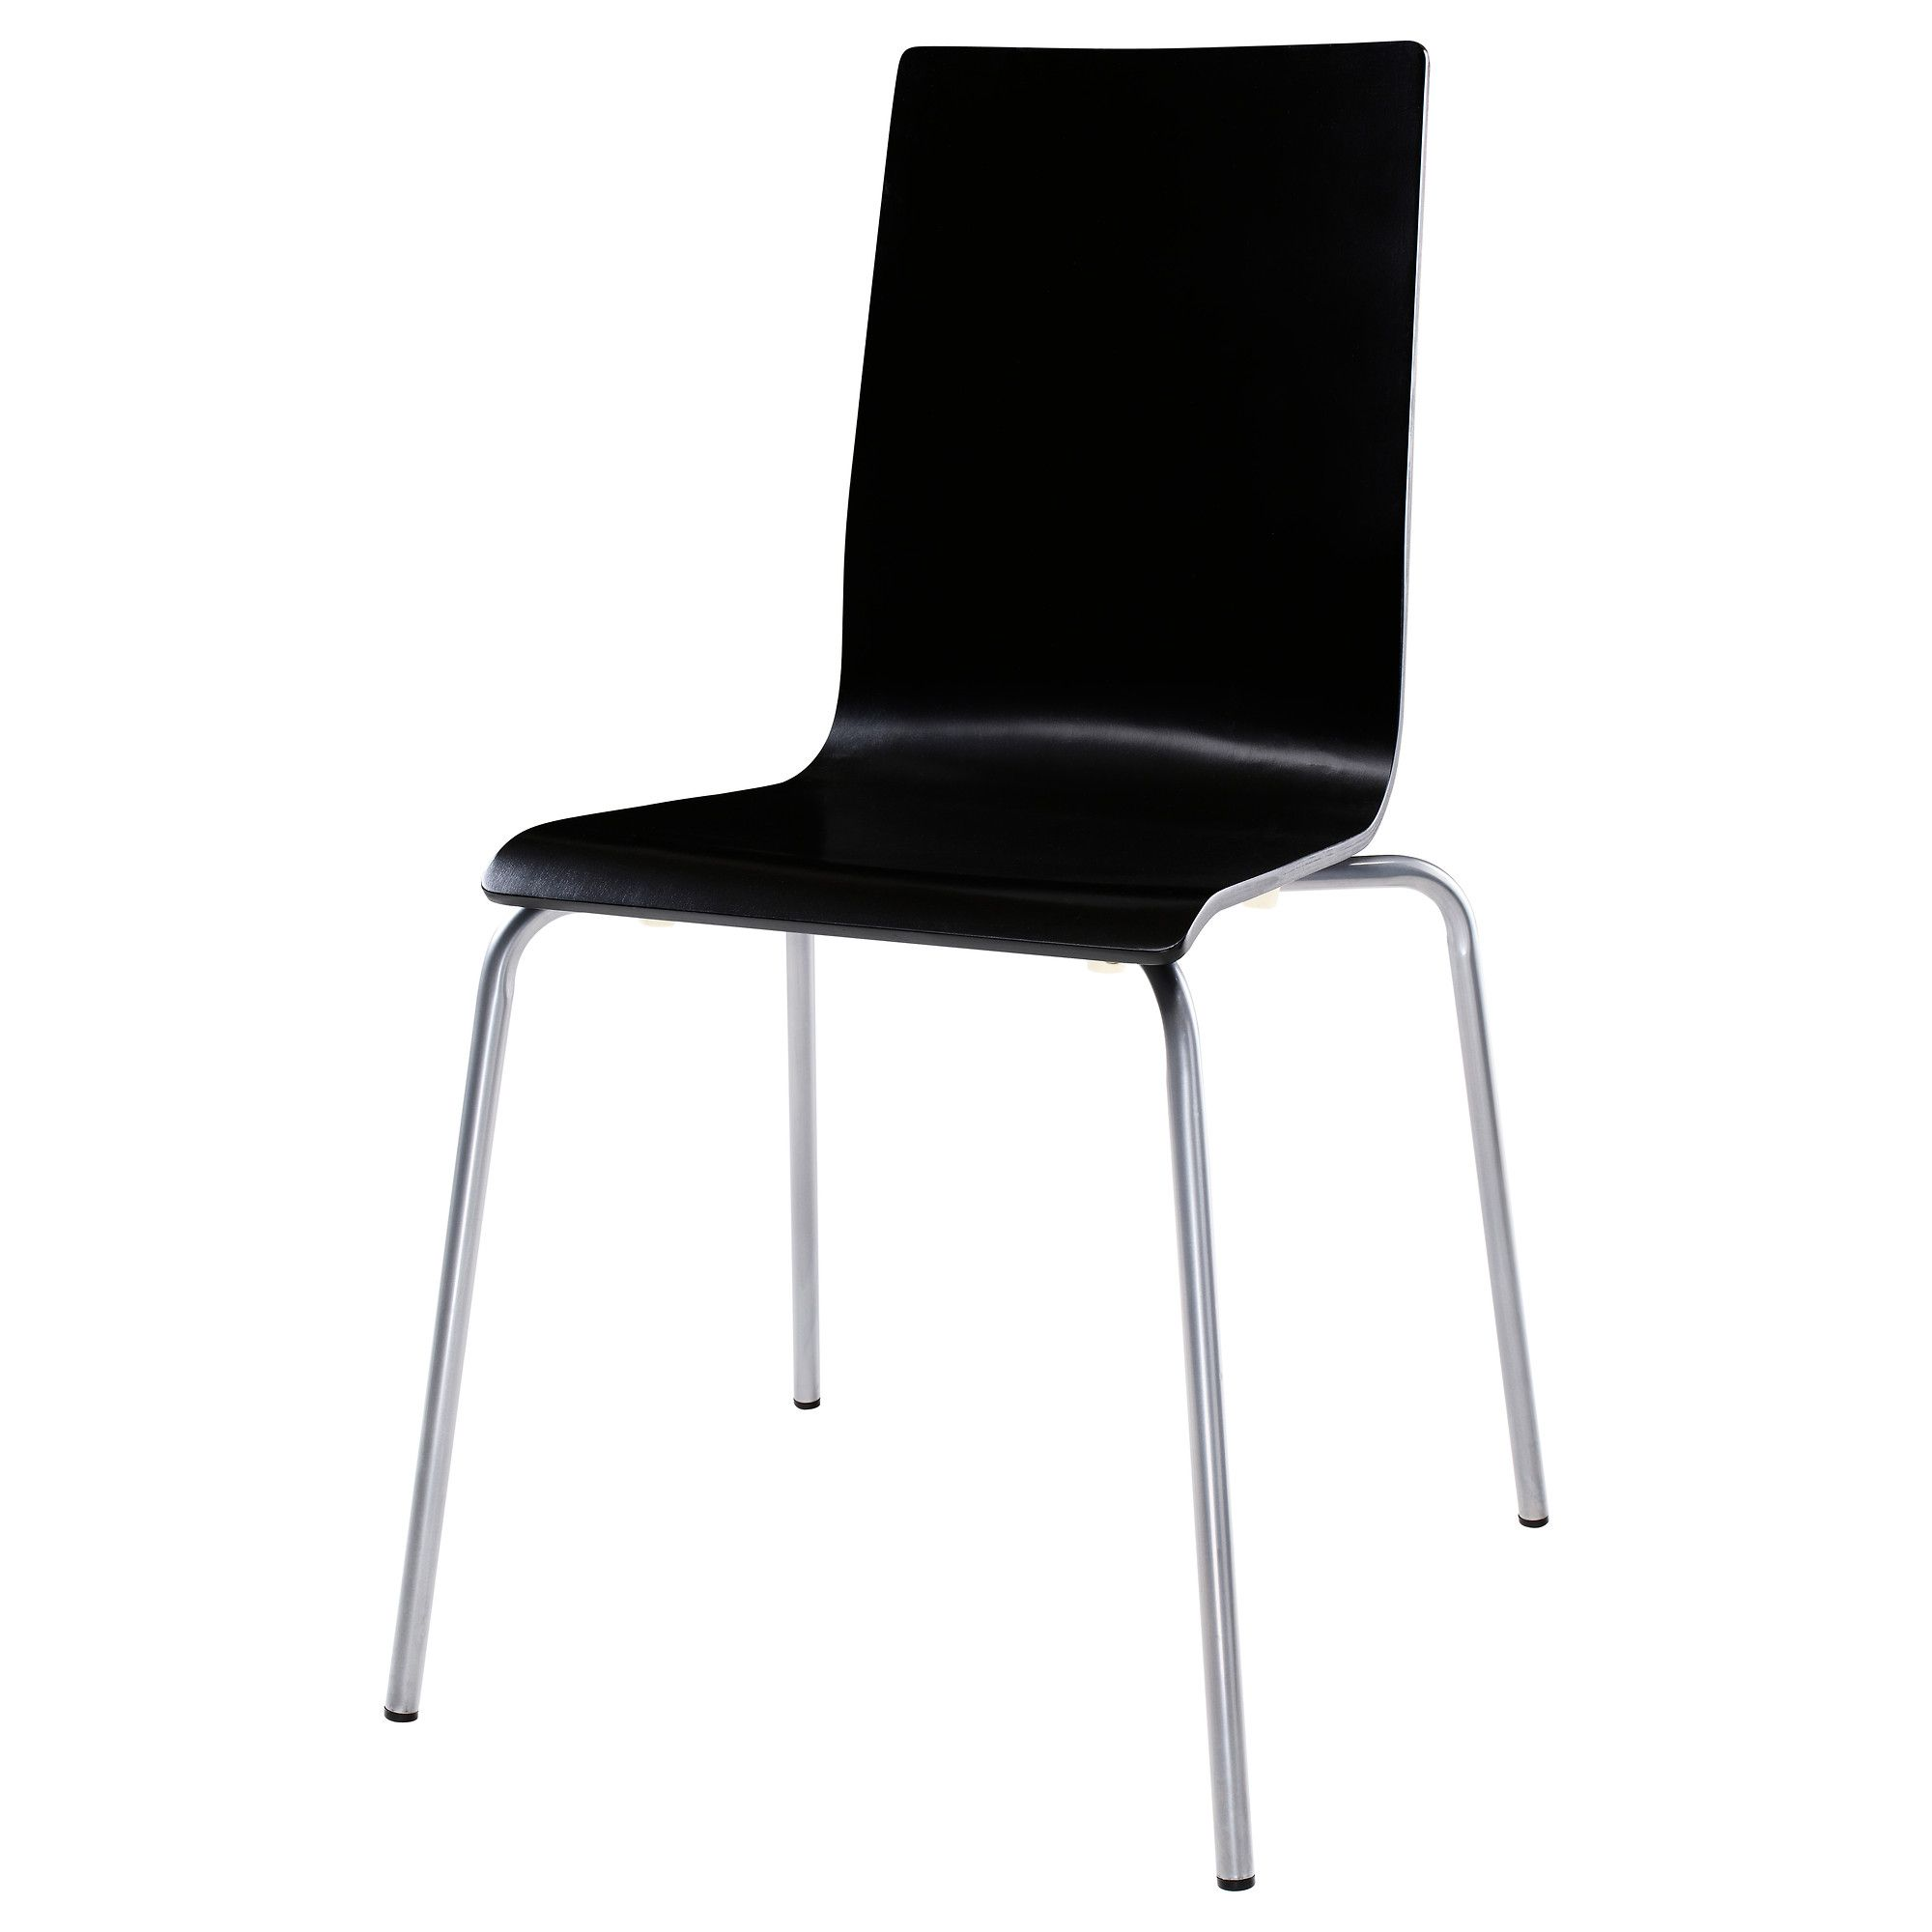 IKEA Martin chair for dining room